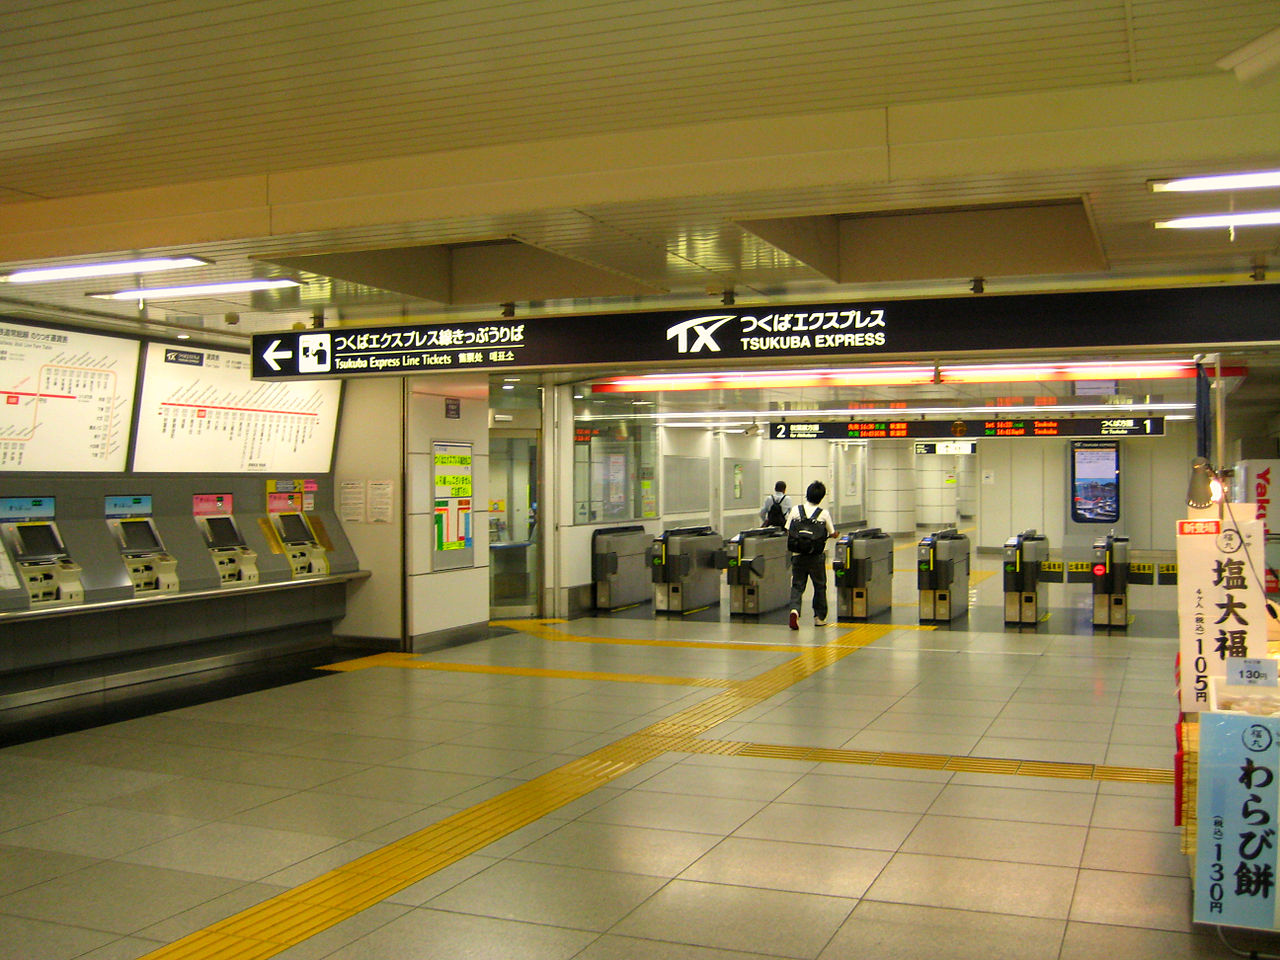 1280px kitasenju station ticket gate (tx line)